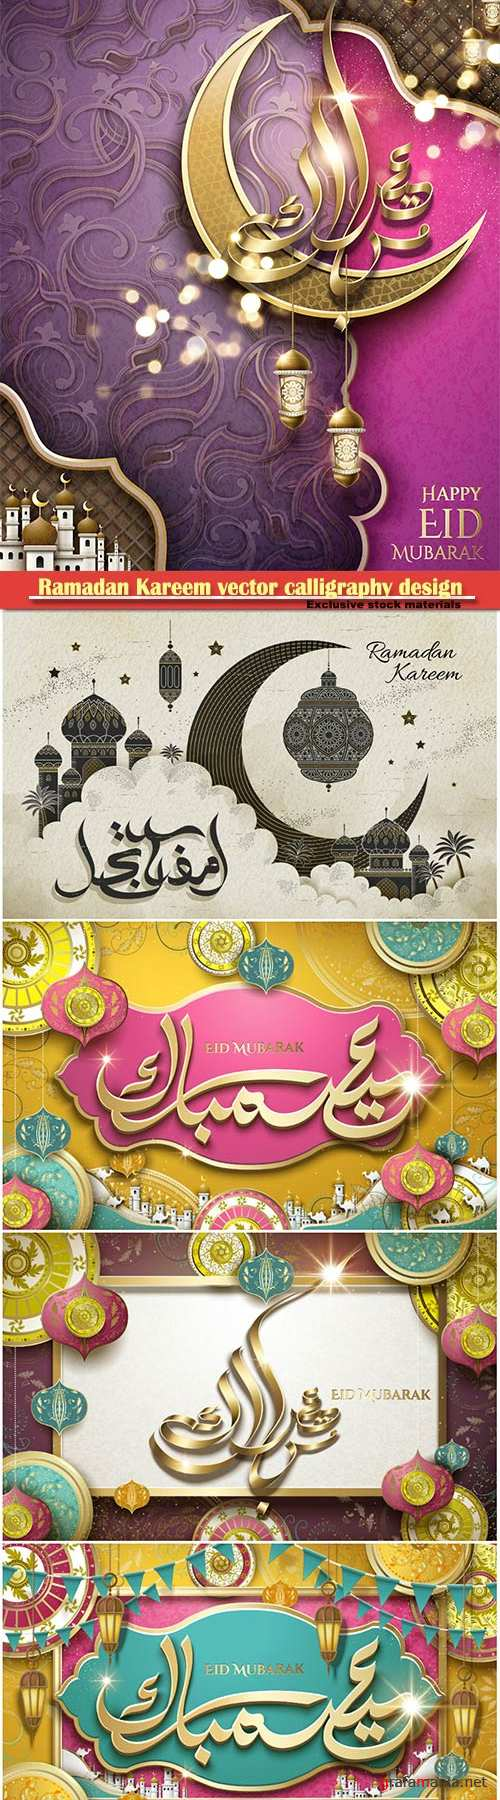 Ramadan Kareem vector calligraphy design with decorative floral pattern,mosque silhouette, crescent and glittering islamic background # 5